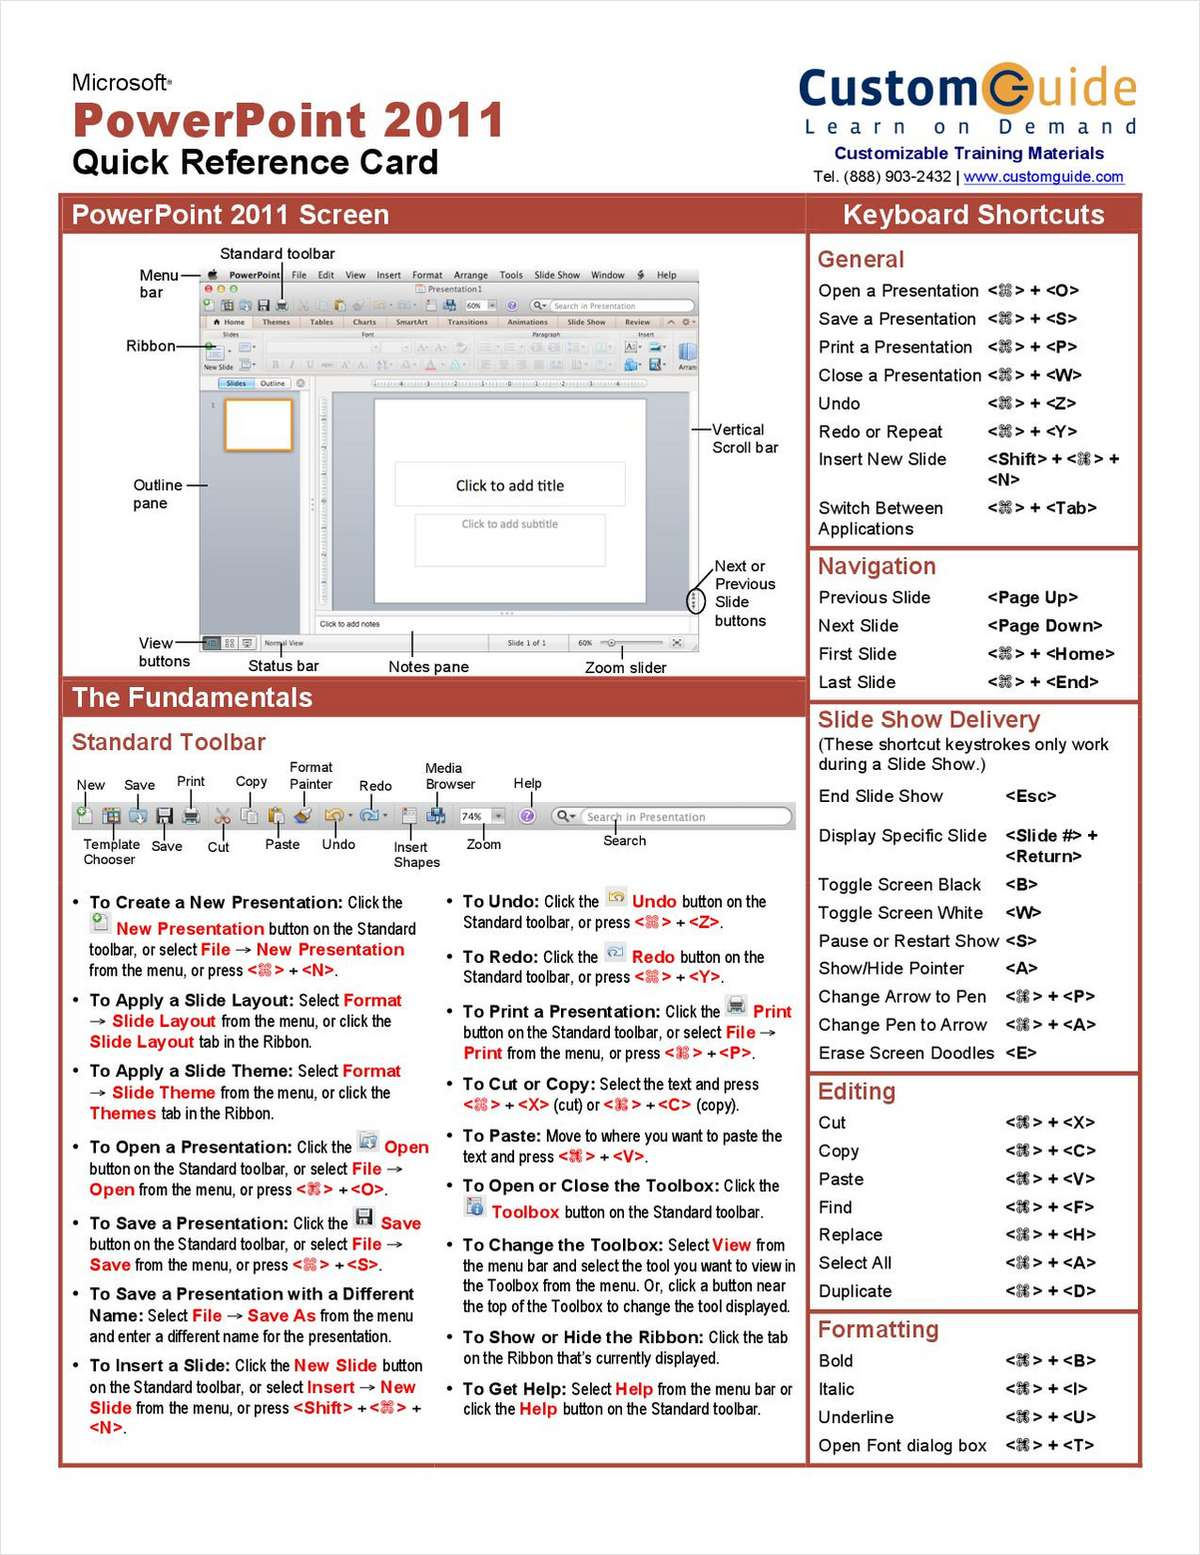 Microsoft PowerPoint 2011- Free Quick Reference Card